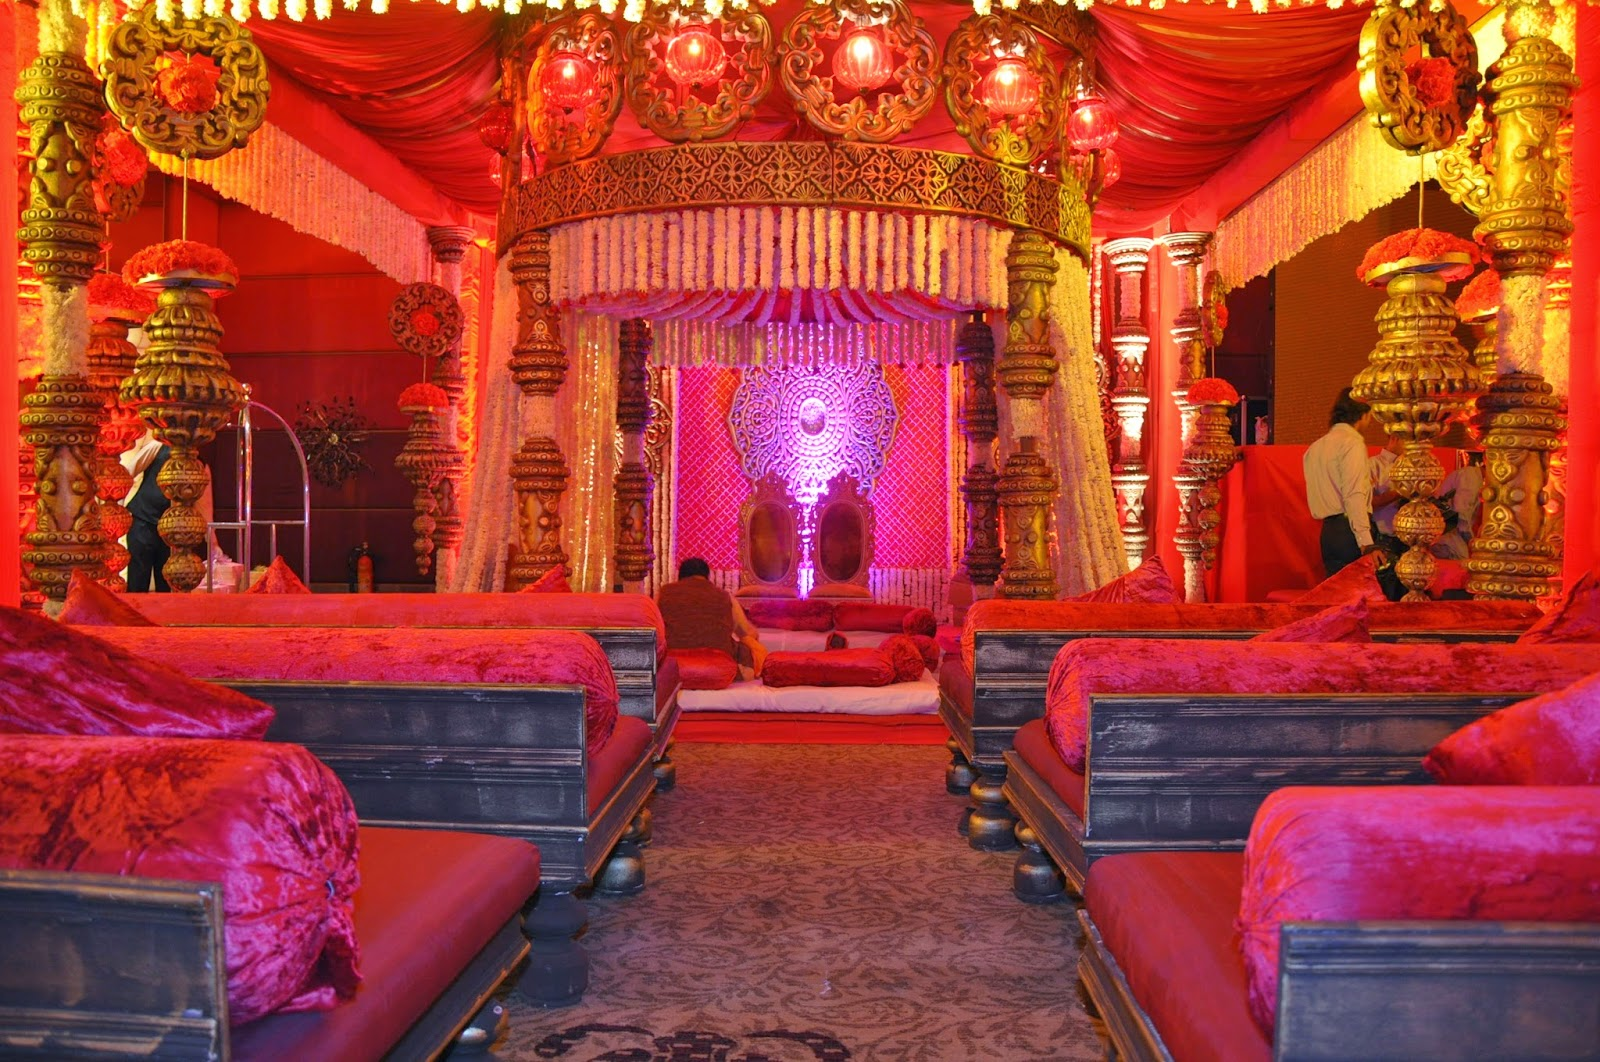 Wedding Managment Wedding Planner In Delhi Wedding